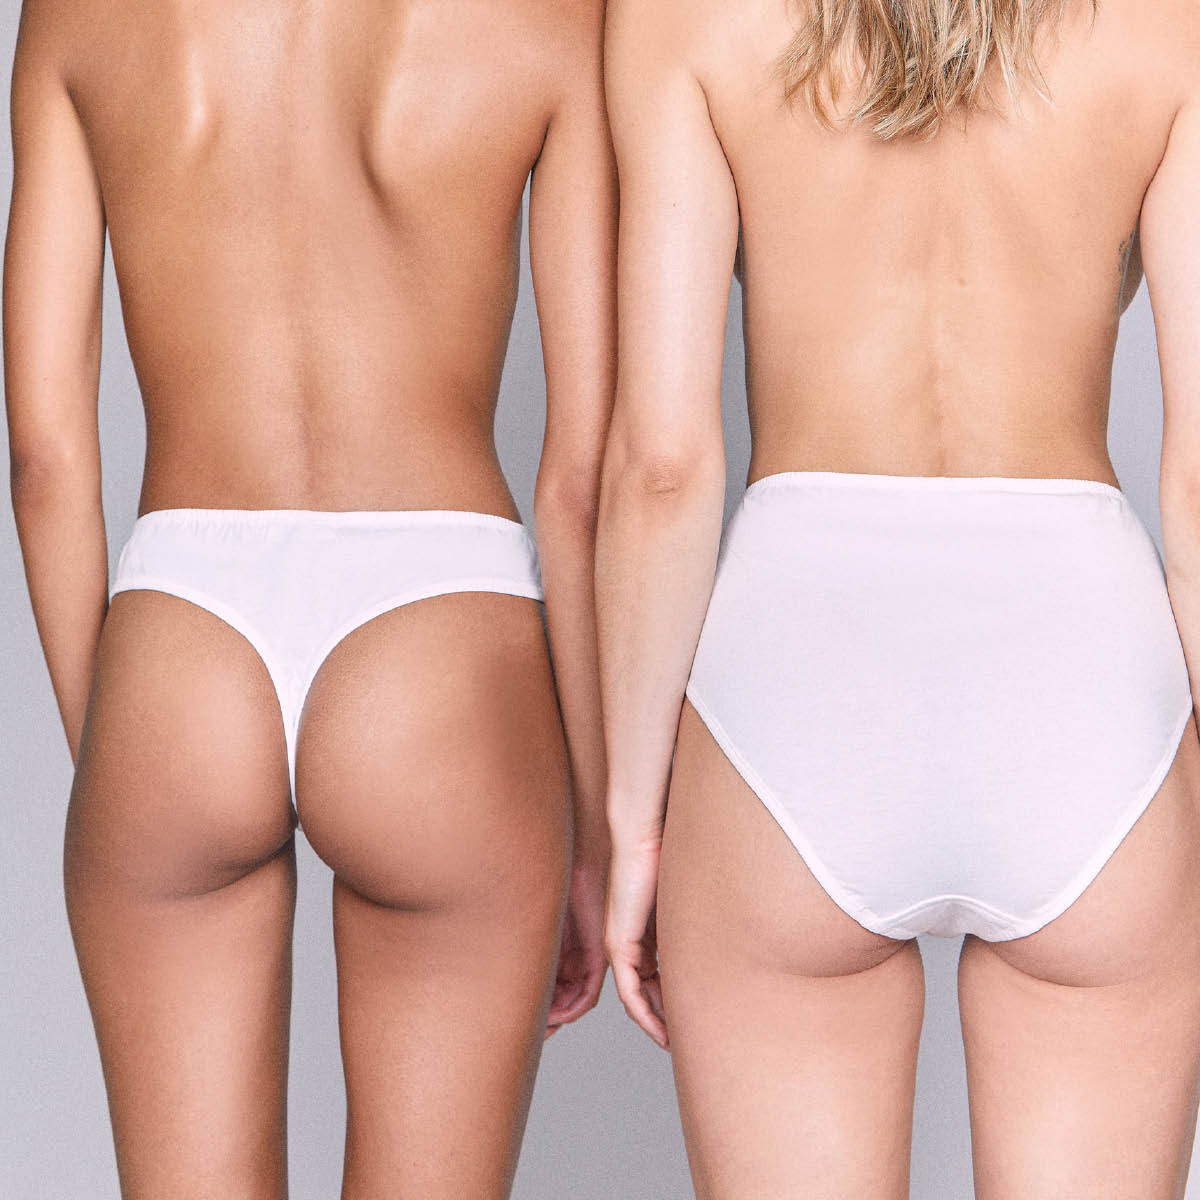 two women wearing white organic cotton underwear, one white cotton thong, one high waisted high rise white cotton underwear